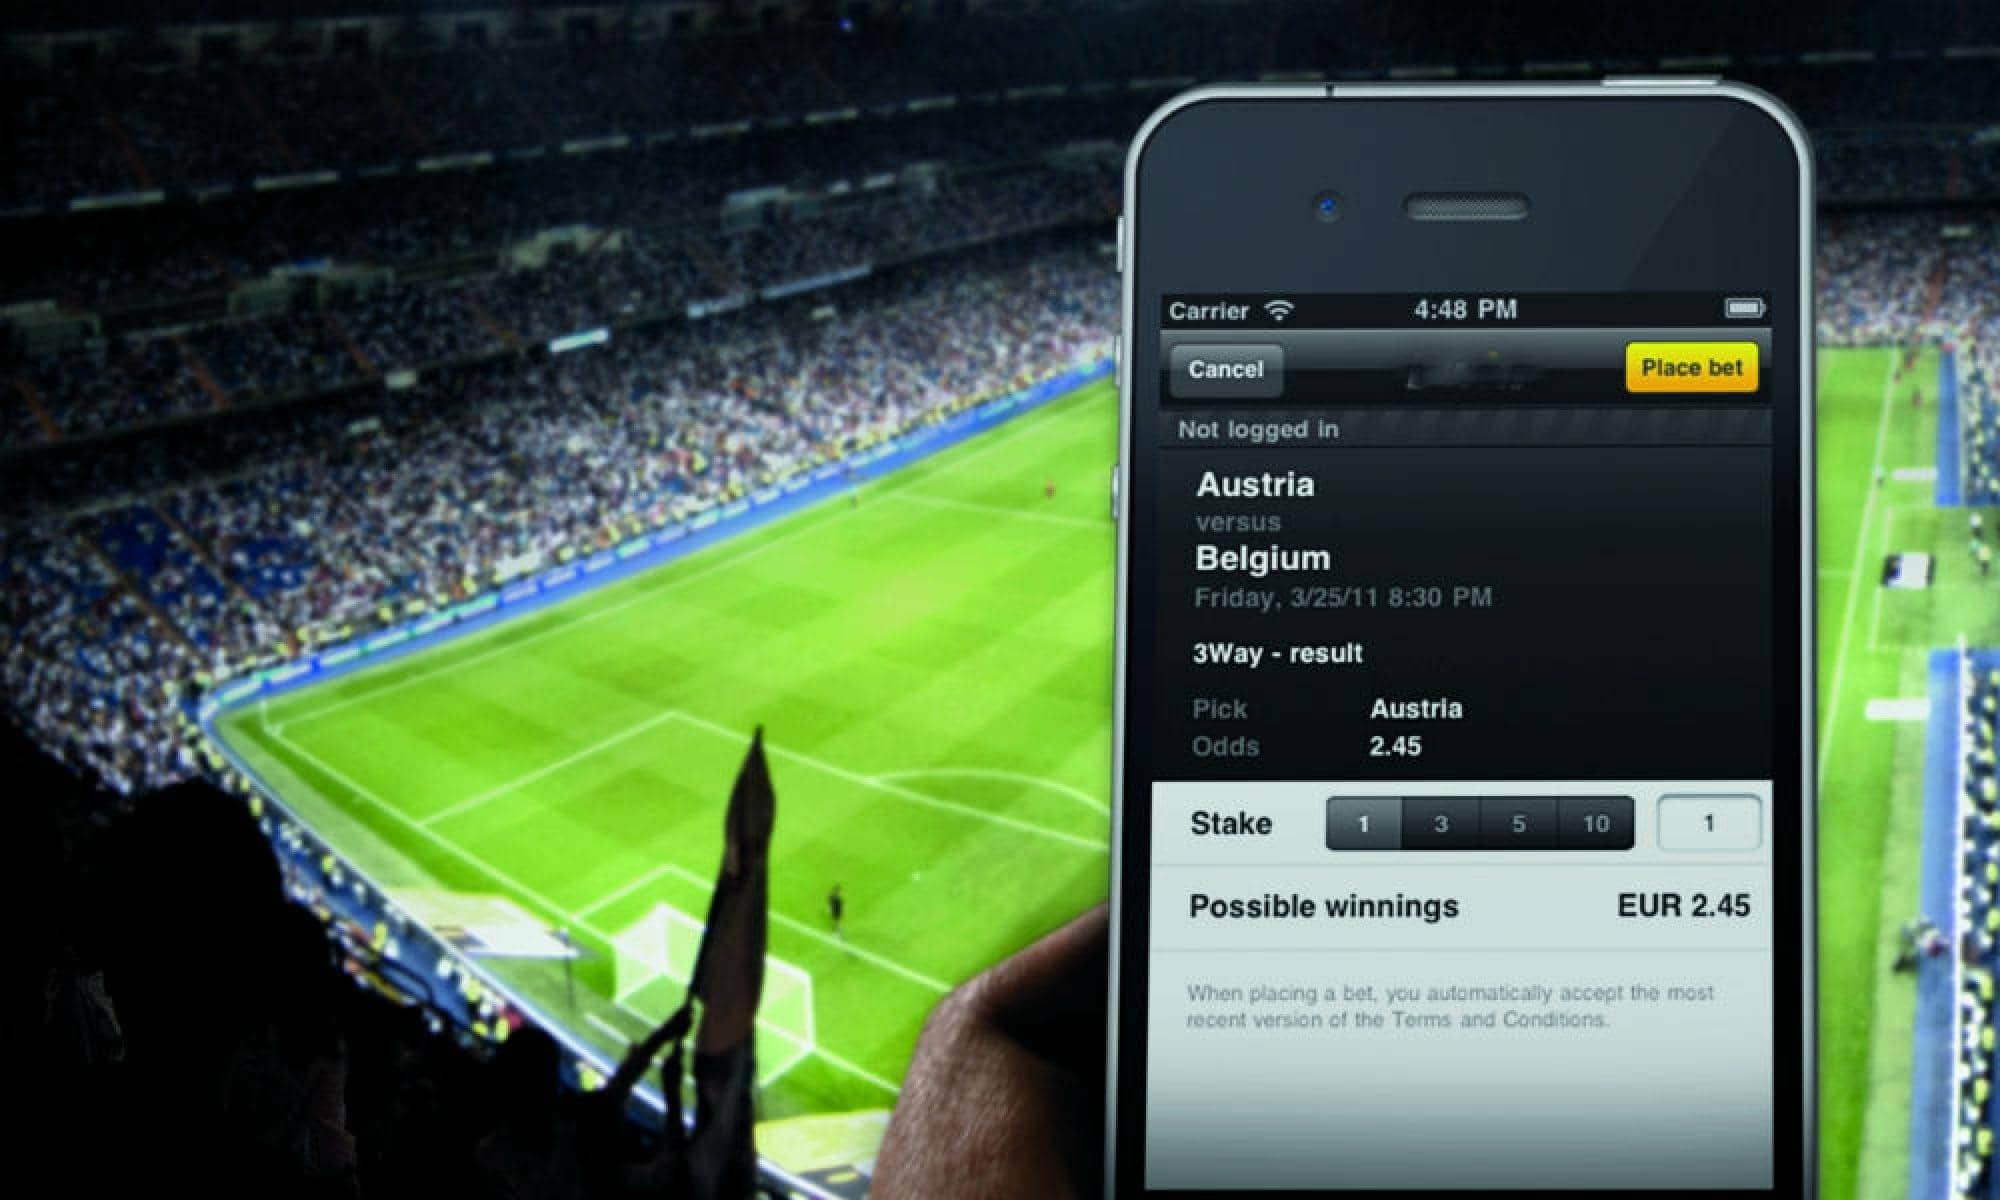 Why you can now place bets using your mobile device